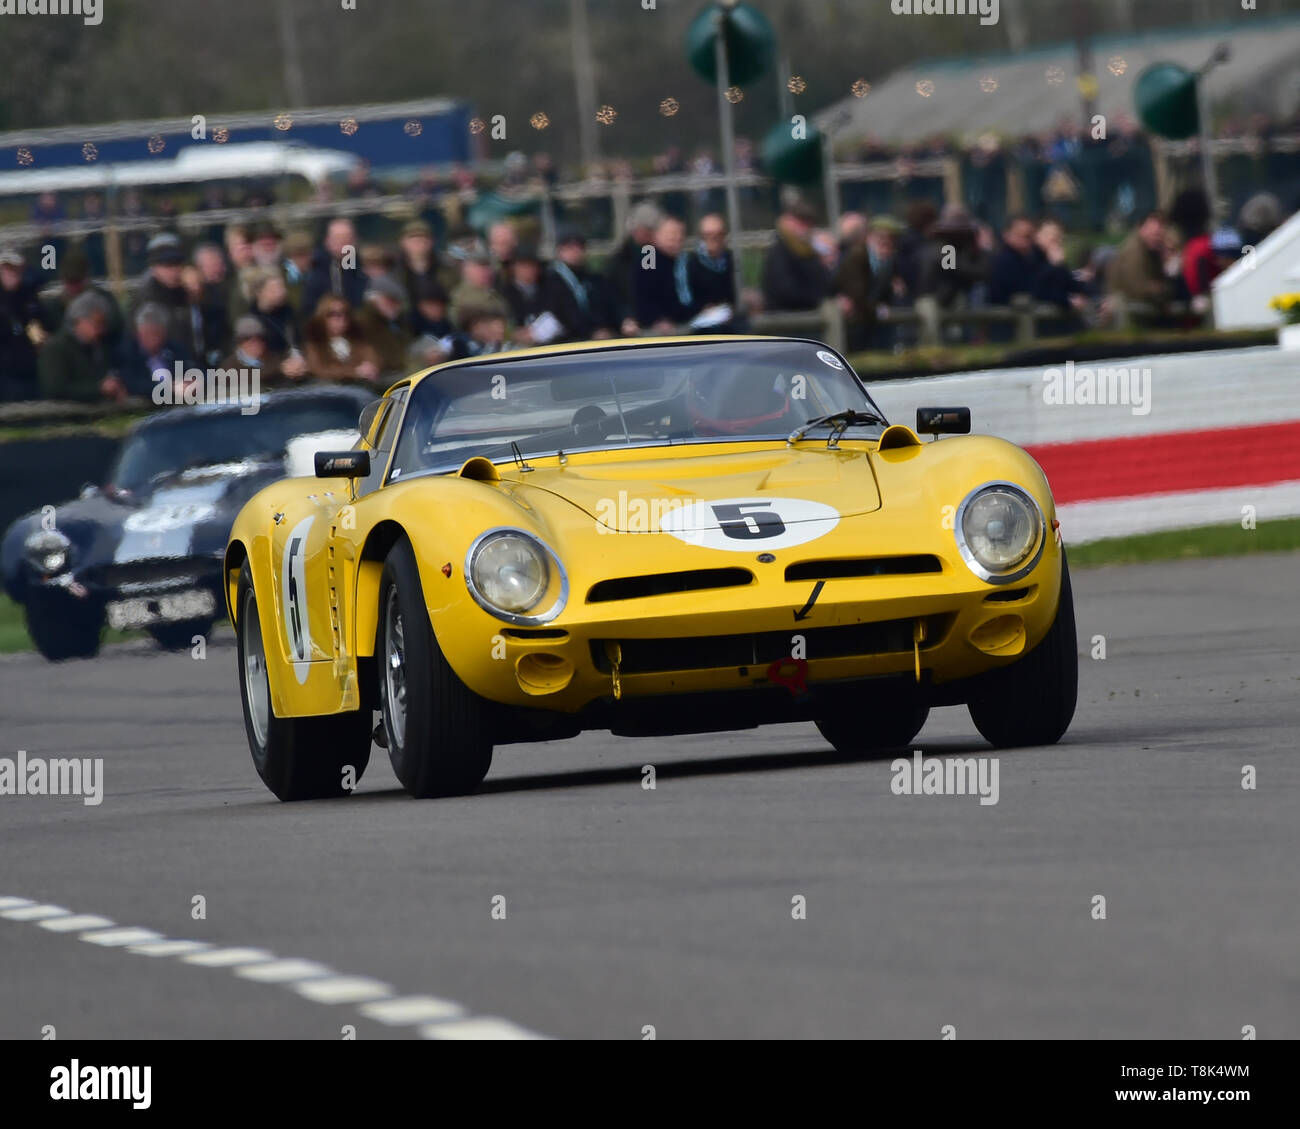 Yelmer Buurman, Alexander Van der Lof, Bizzarrini 5300GT, Graham Hill Trophy, Closed cockpit GT cars, Prototype cars, Spirit of the RAC TT Races 1960- - Stock Image